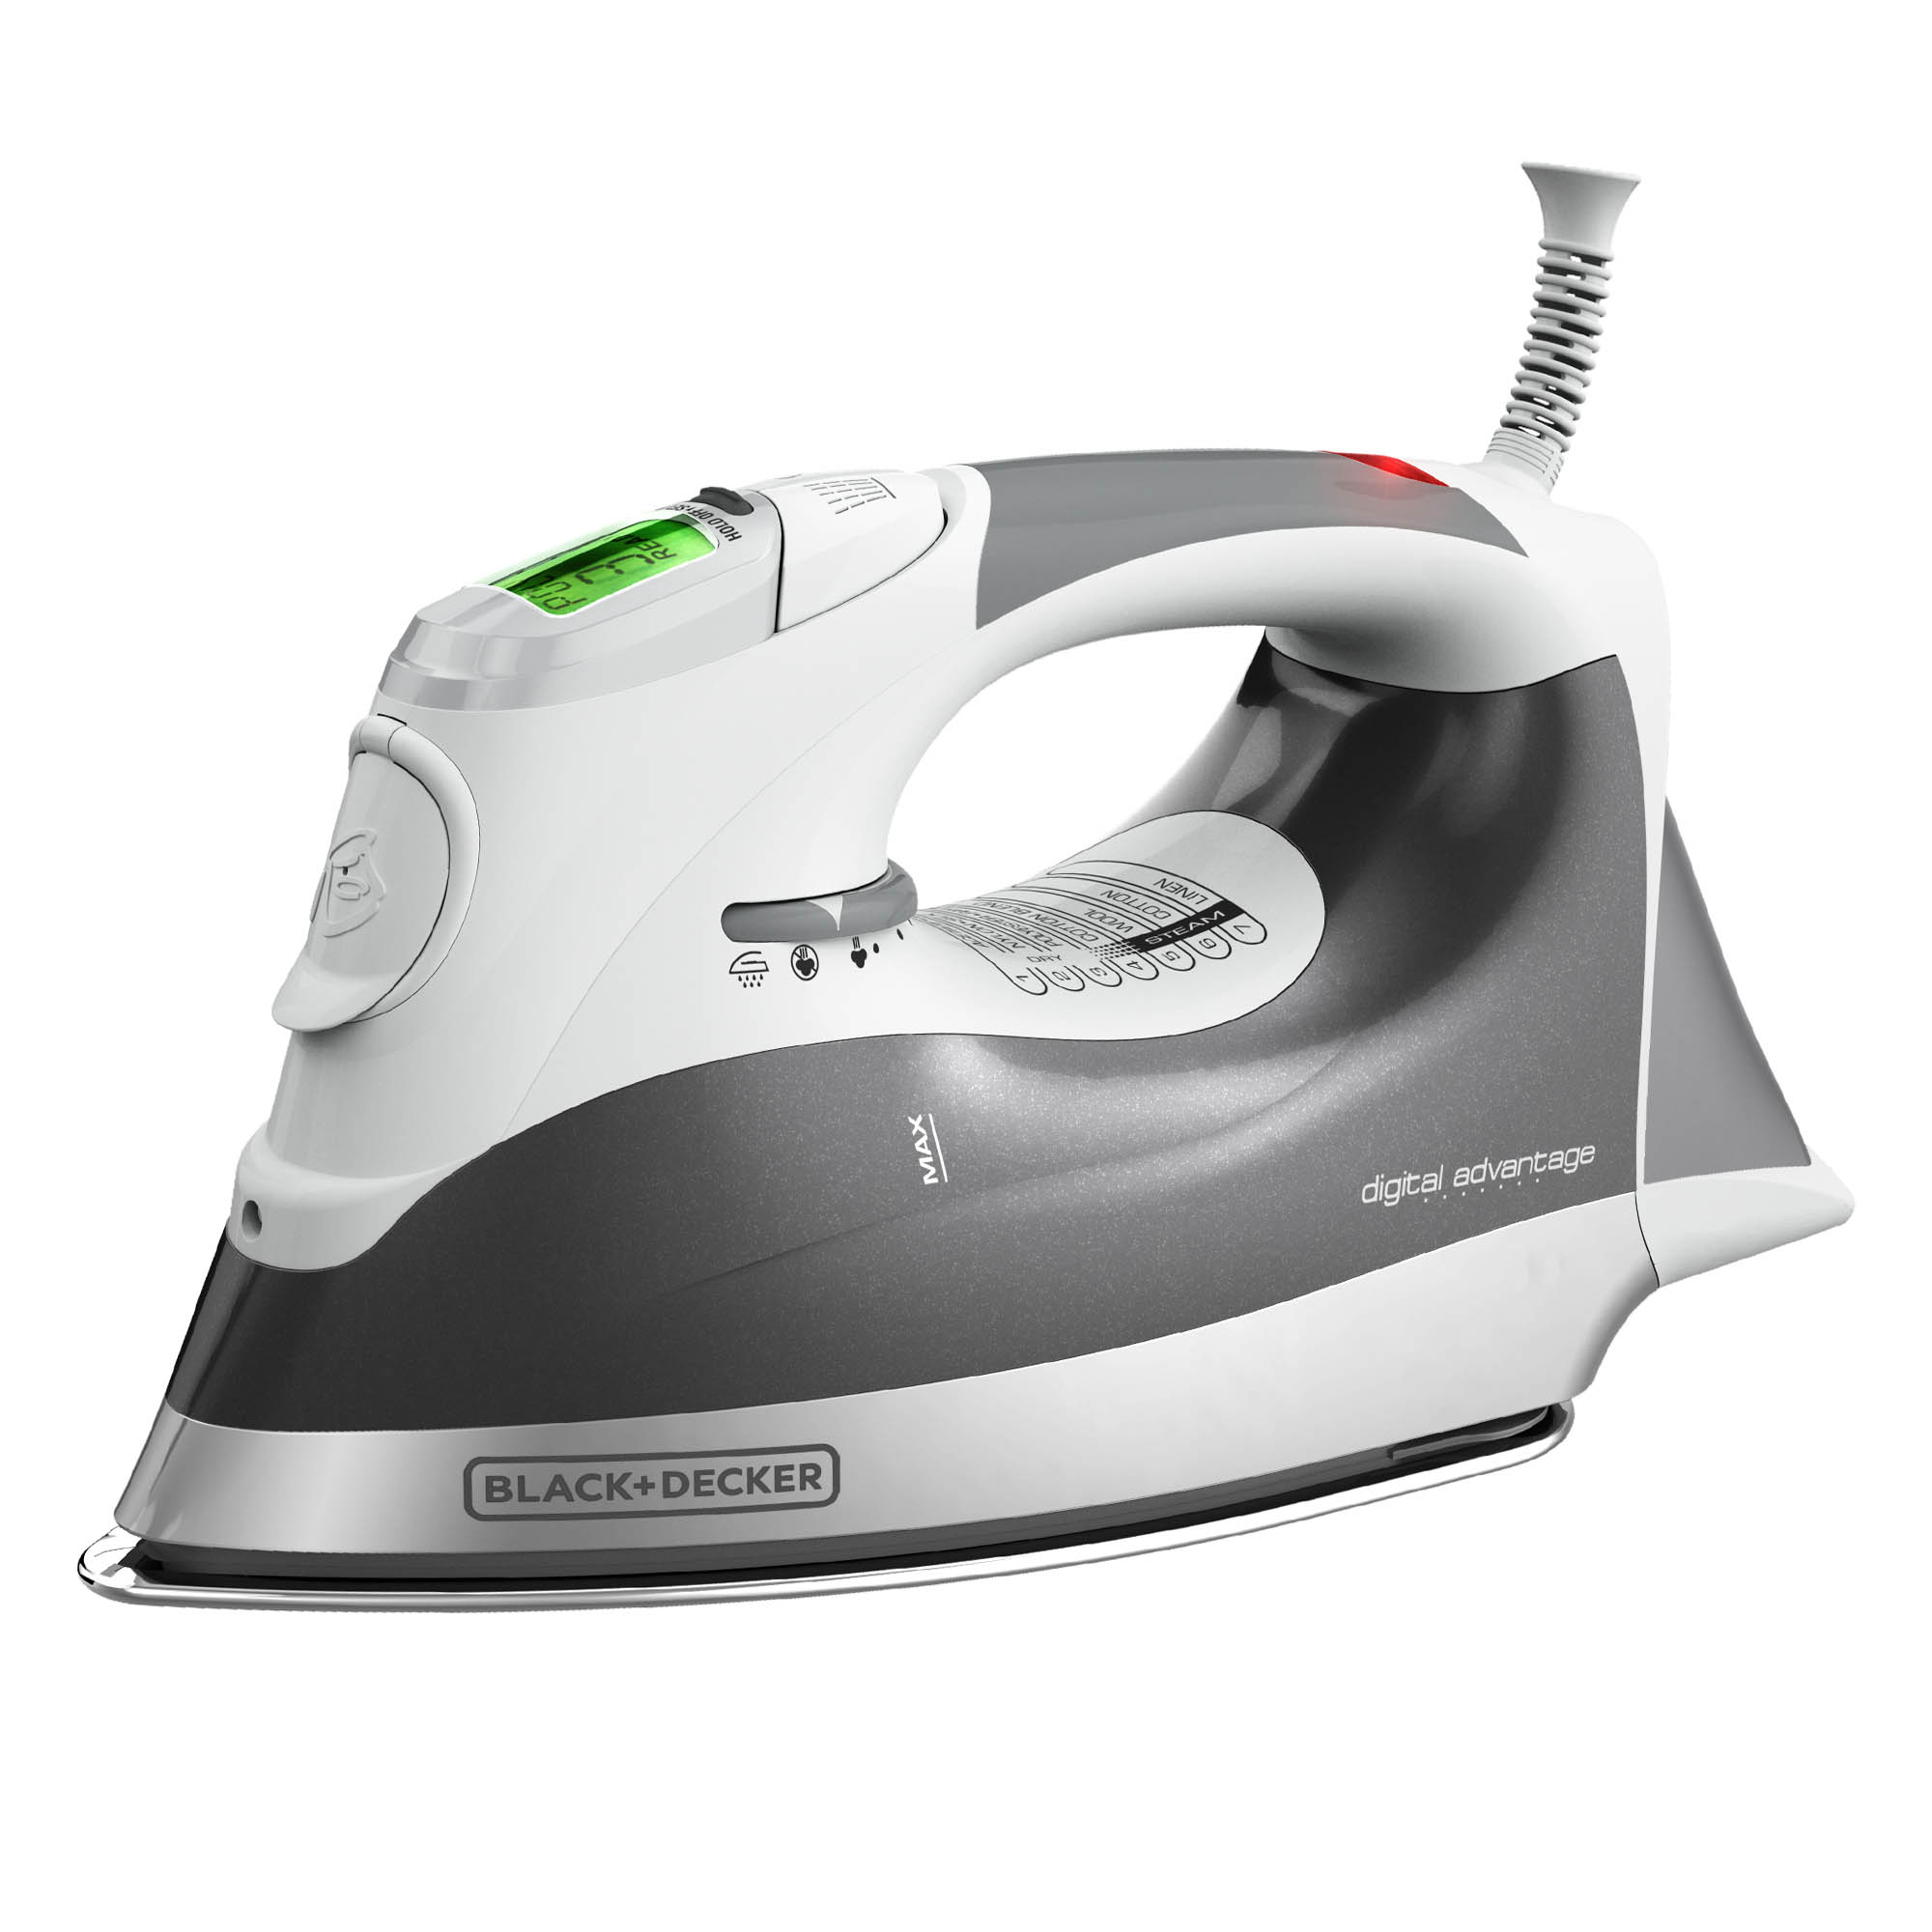 D2030 Digital Advantage™ Professional Steam Iron